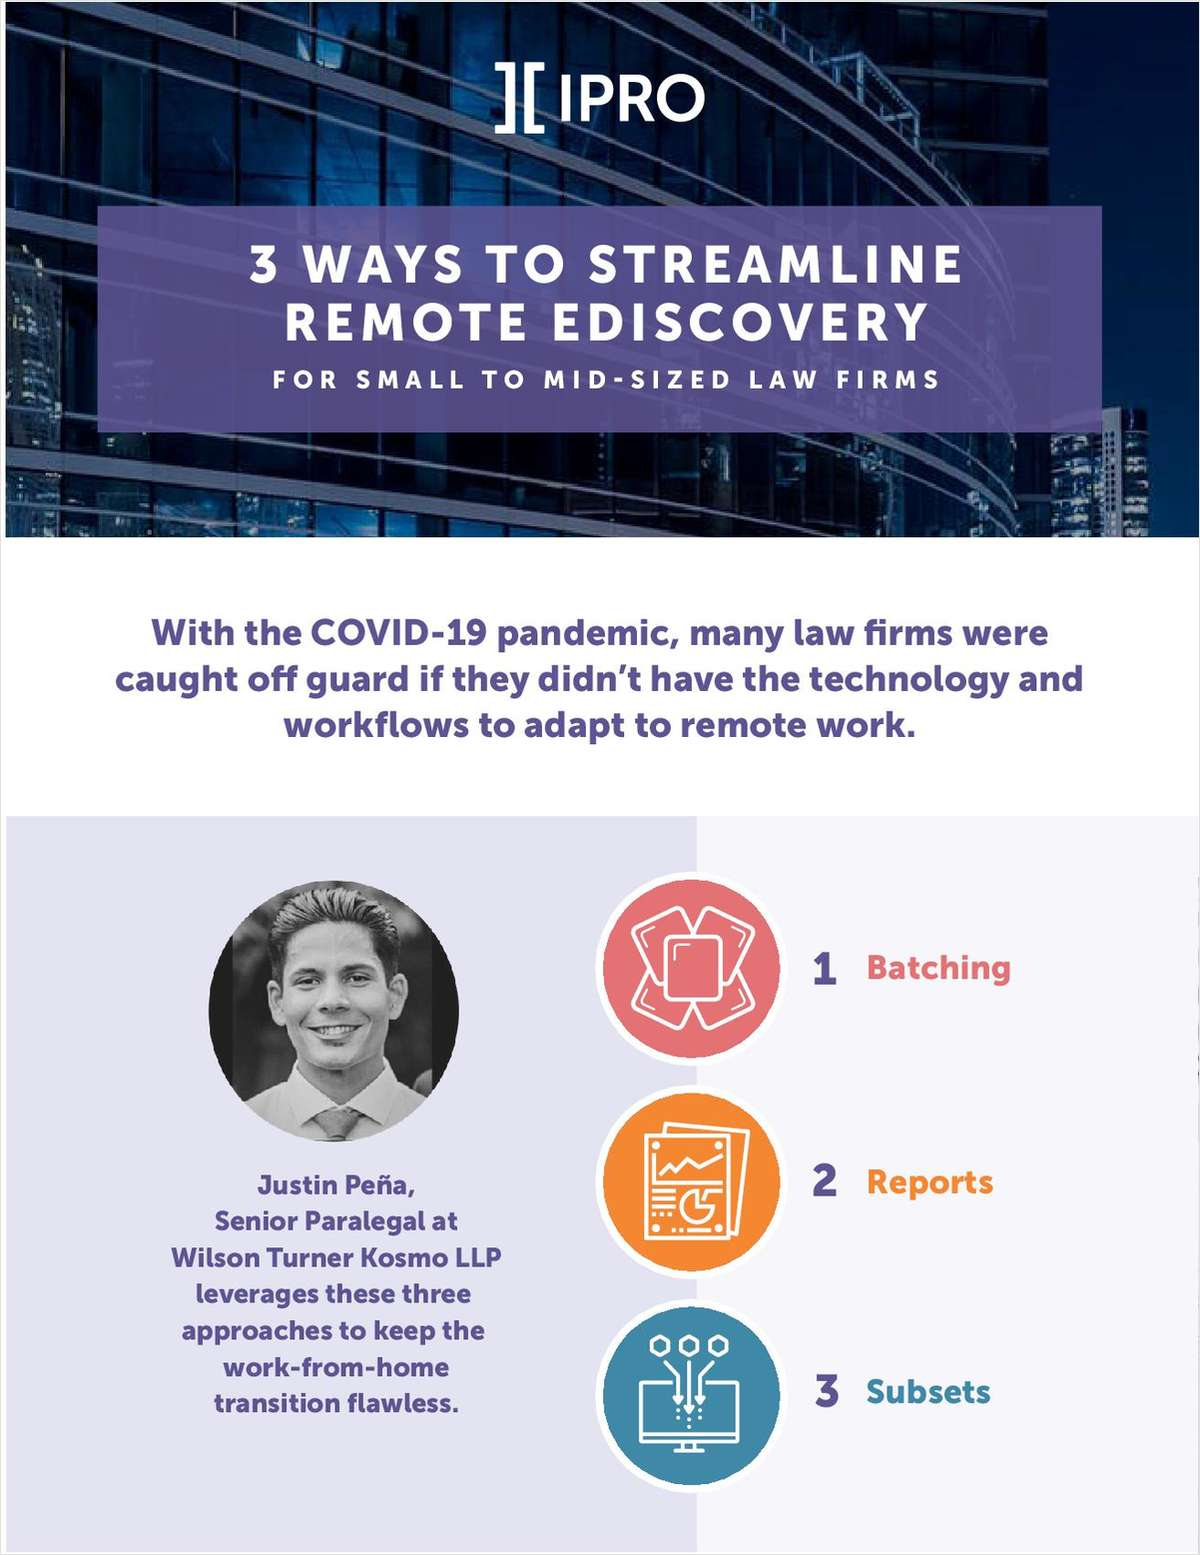 With the COVID-19 pandemic, many law firms were caught off guard if they didn't have the technology and workflows to adapt to remote work. Download this white paper and learn how you can maintain a seamless ediscovery transition from office to home.